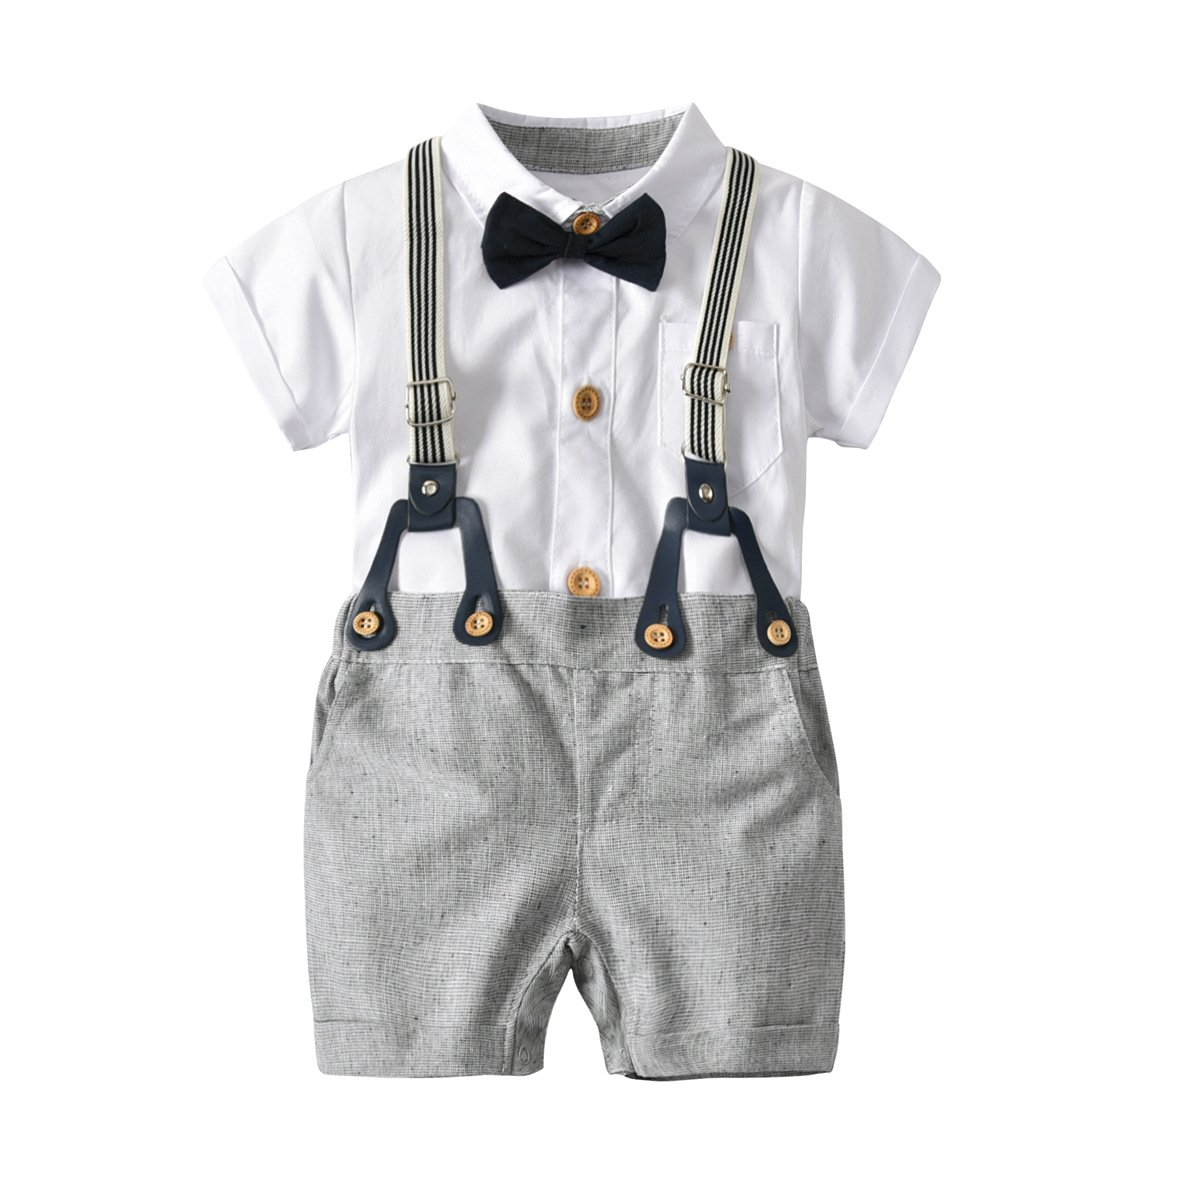 Fairy Baby Boys Short Gentle Outfits Suits,White Shirt+Bib Pants+Bow Tie Clothing Set